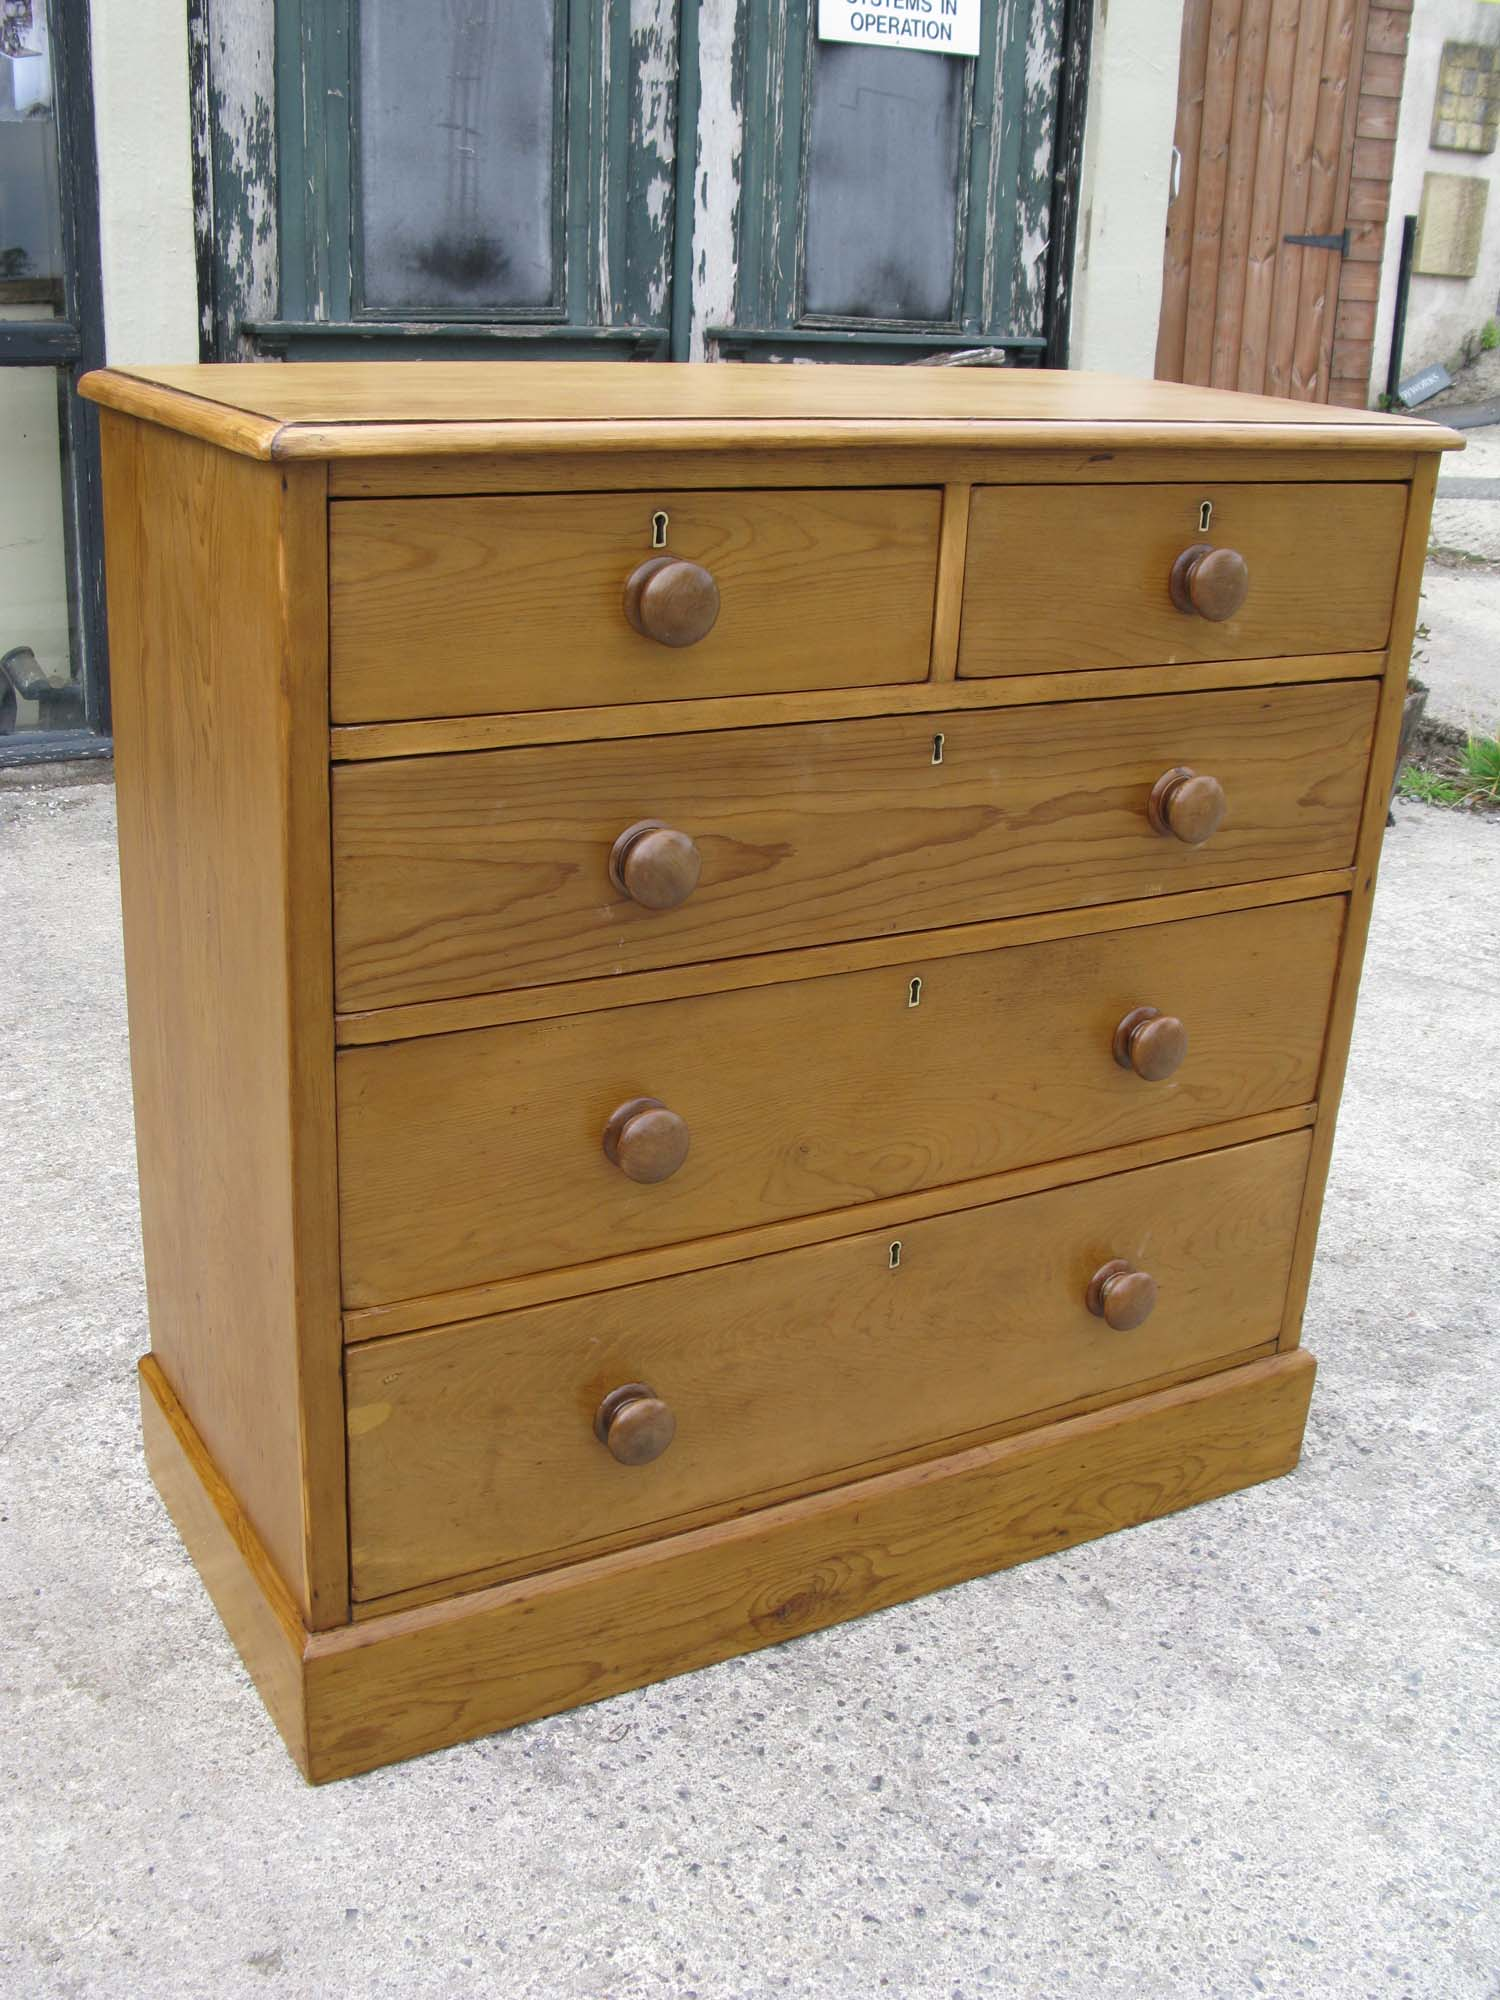 This Is A Lovely Old Victorian Pine Chest Of Drawers. Underneath That  Attractive (!) Brown Paint It Is A Really Sturdy, Well Made Piece And Its  Going To ...